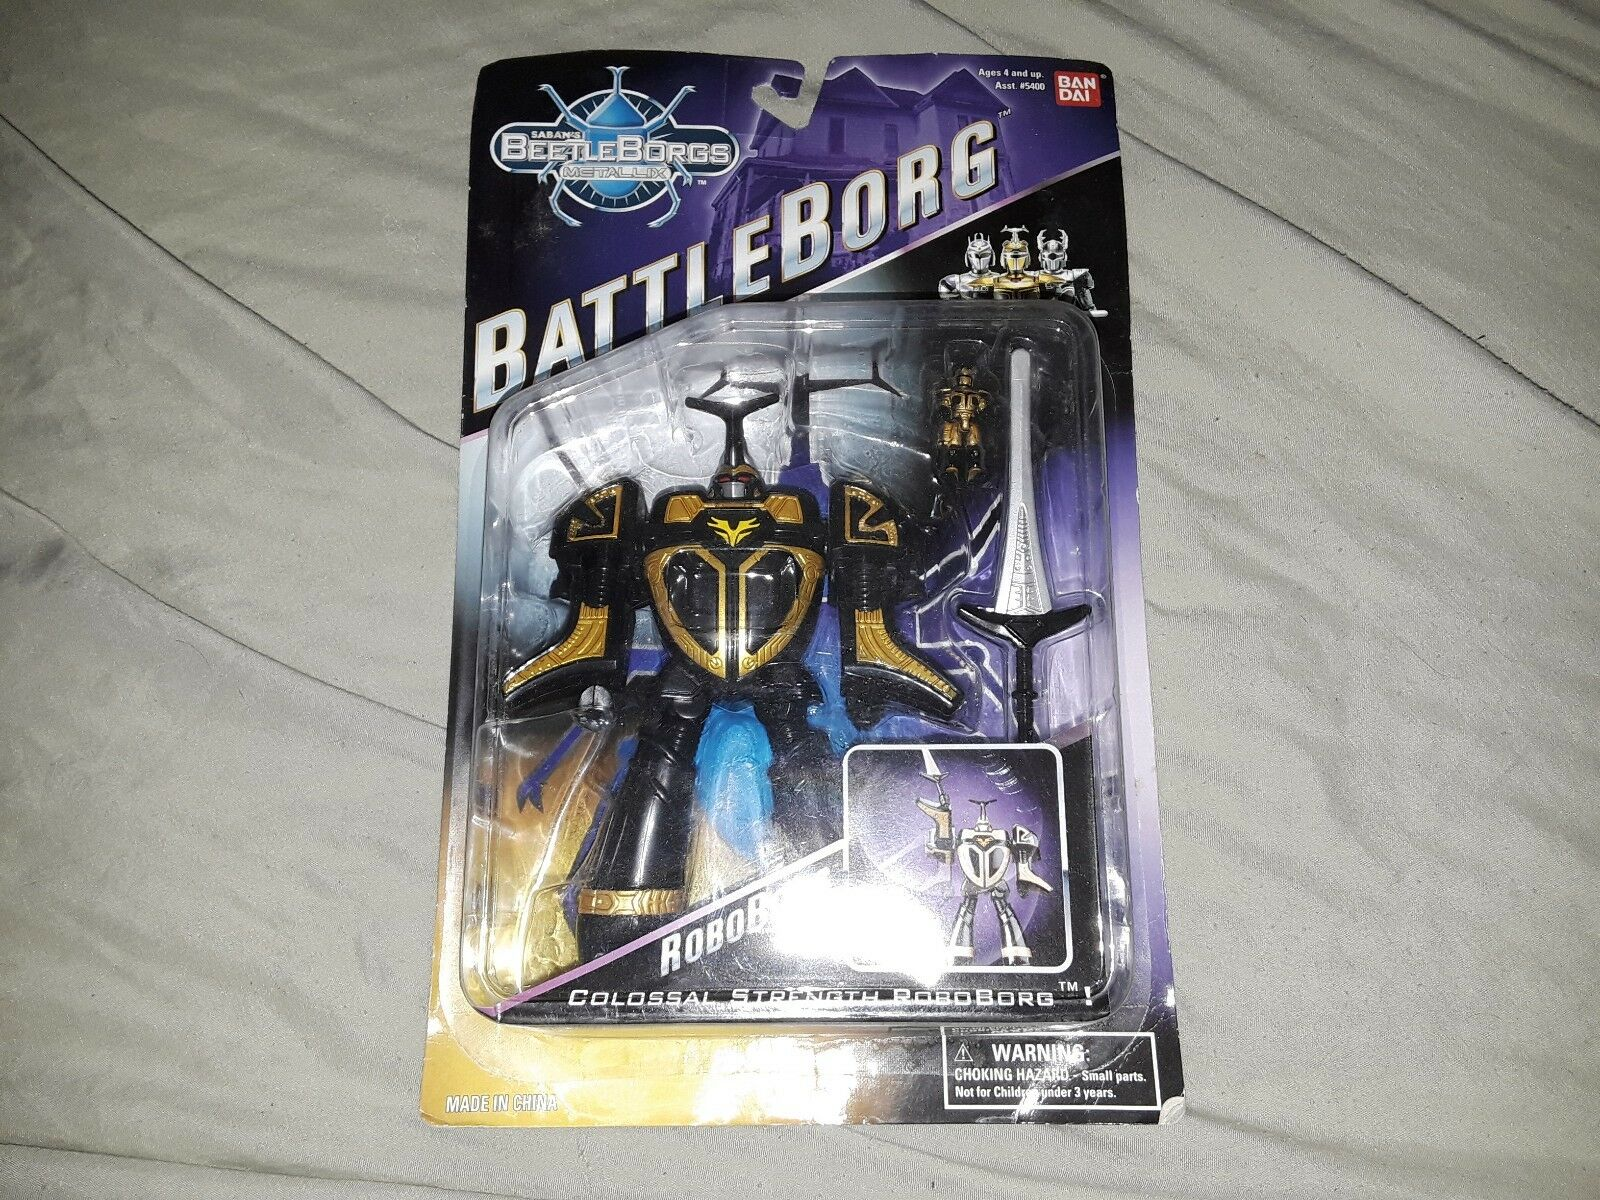 BeetleBorgs battleBorg ROBOBORG Chromium Gold Beetle Borg Figure NEW